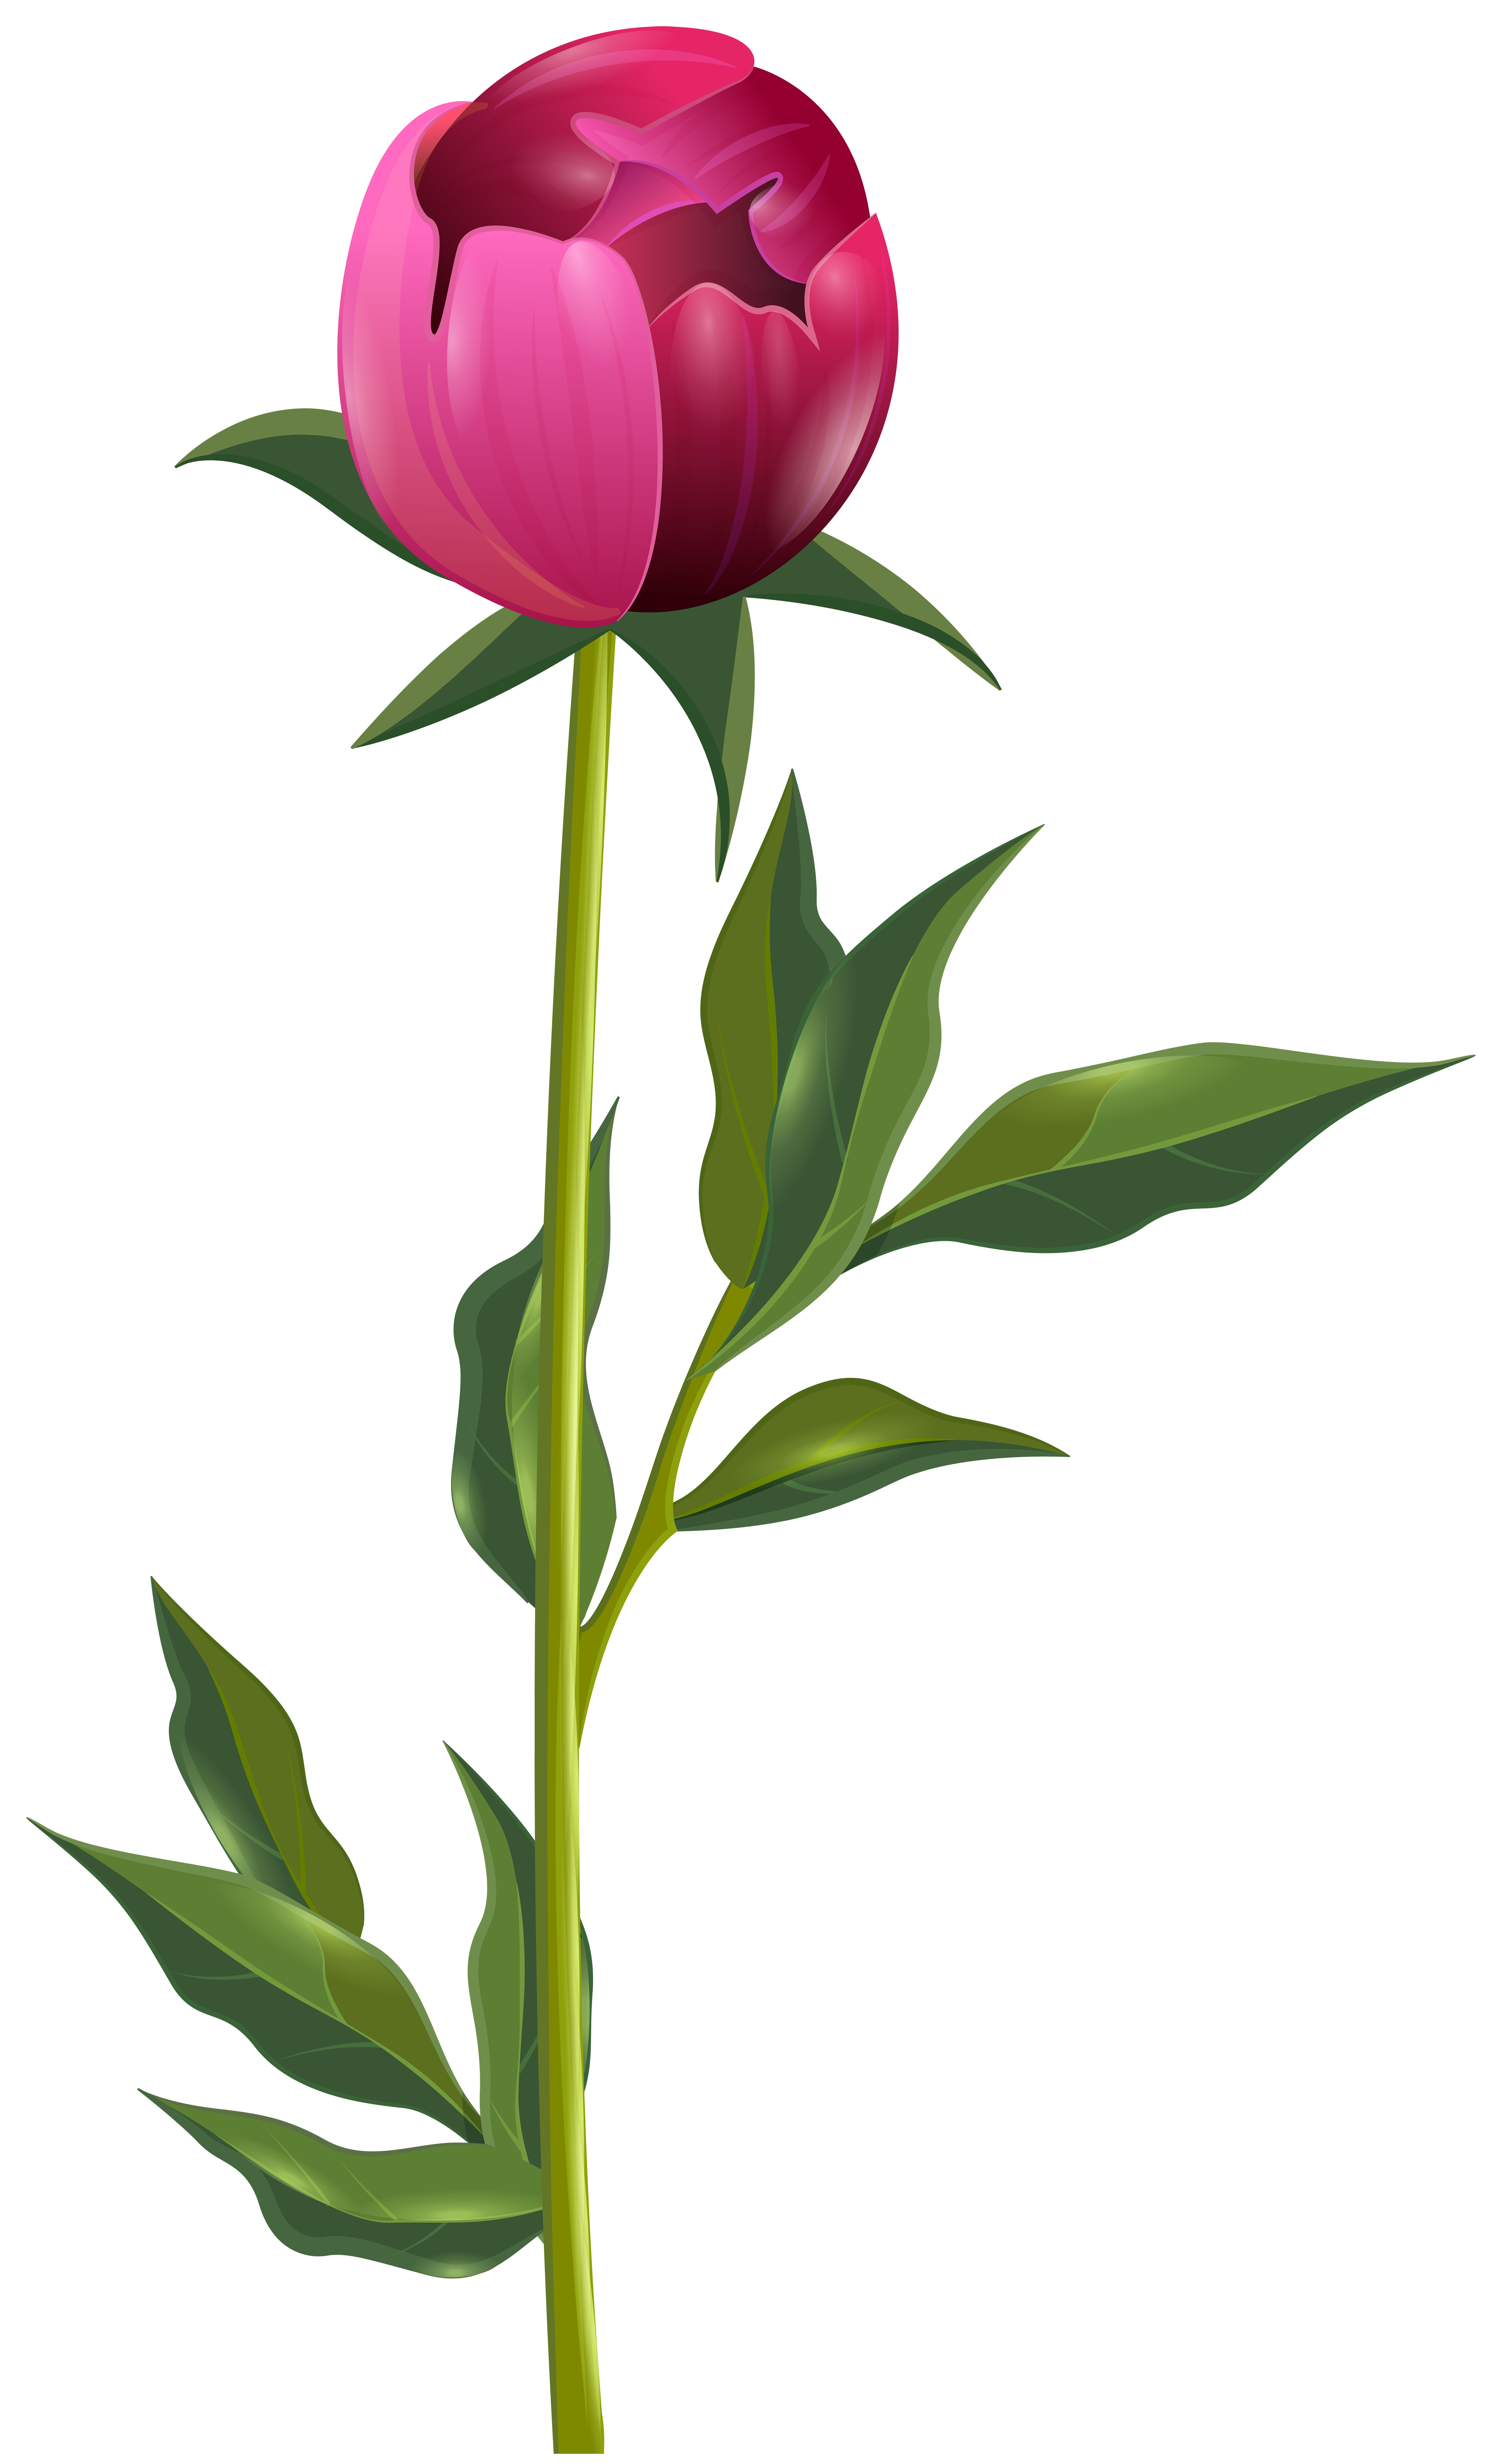 Pfingstrosen Clipart Peony Clipart Detailed Peony Detailed Transparent Free For